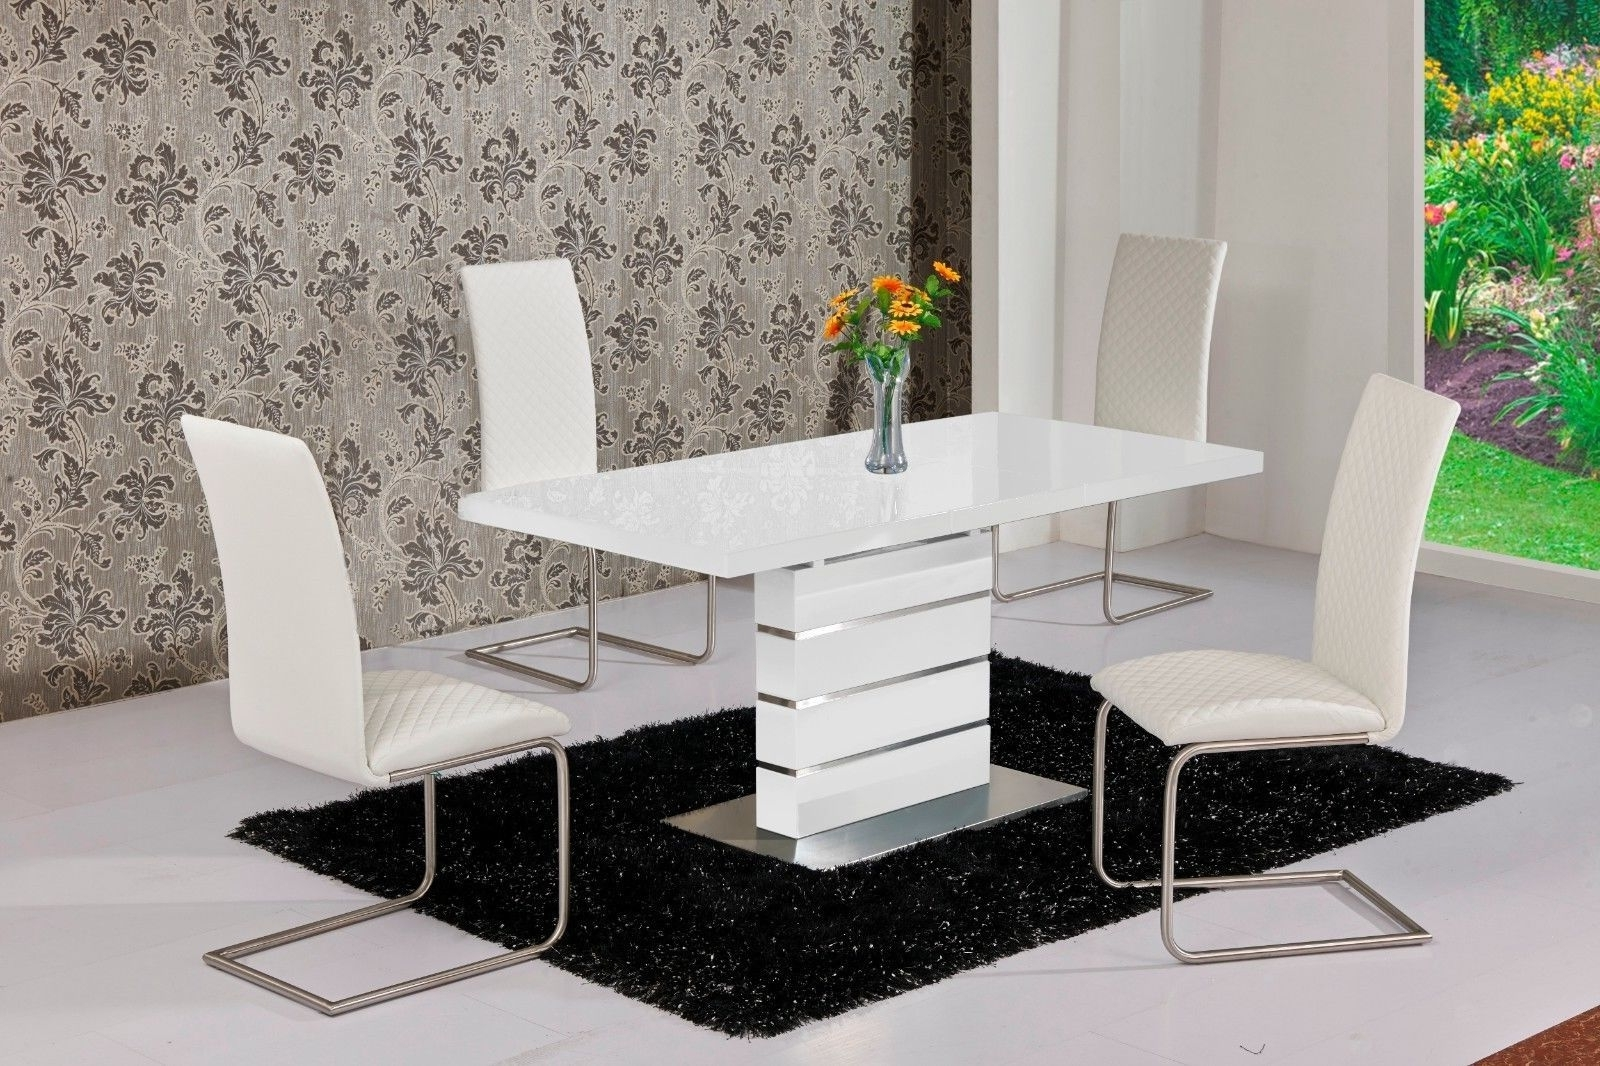 Mace High Gloss Extending 120 160 Dining Table & Chair Set – White Within Popular High Gloss White Extending Dining Tables (View 3 of 25)